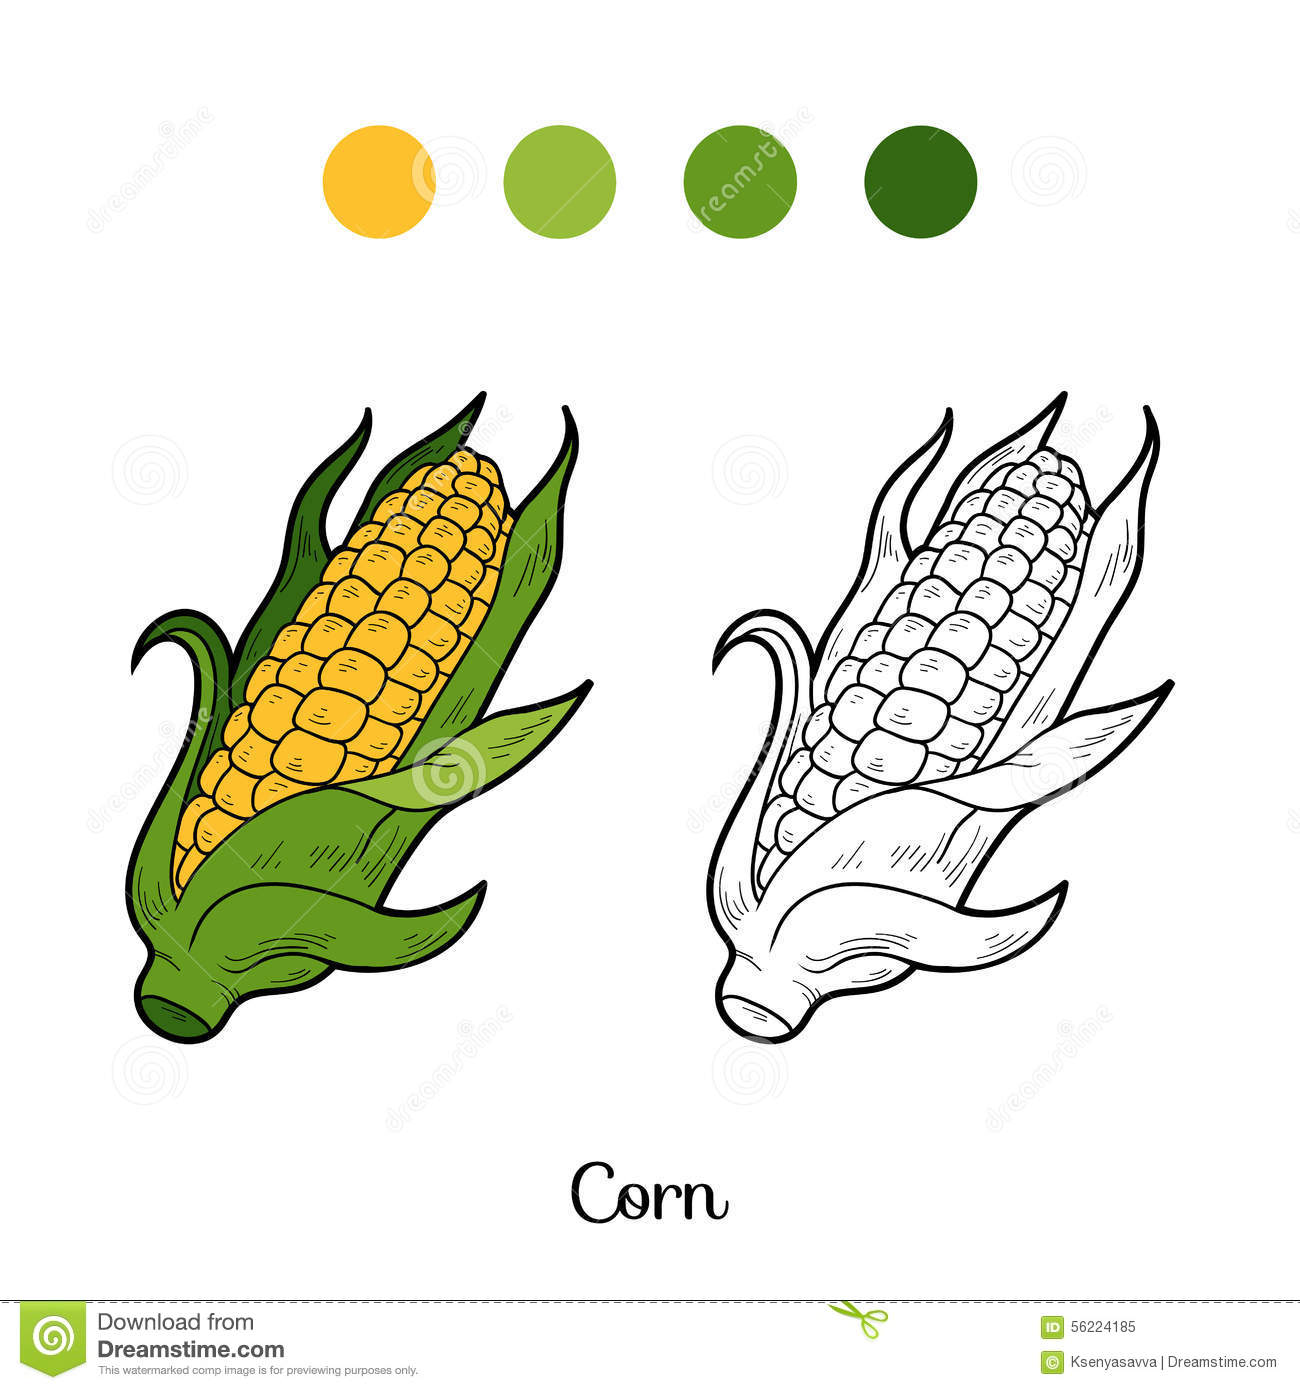 Coloring book pictures of vegetables - Coloring Book Fruits And Vegetables Corn Royalty Free Stock Photo